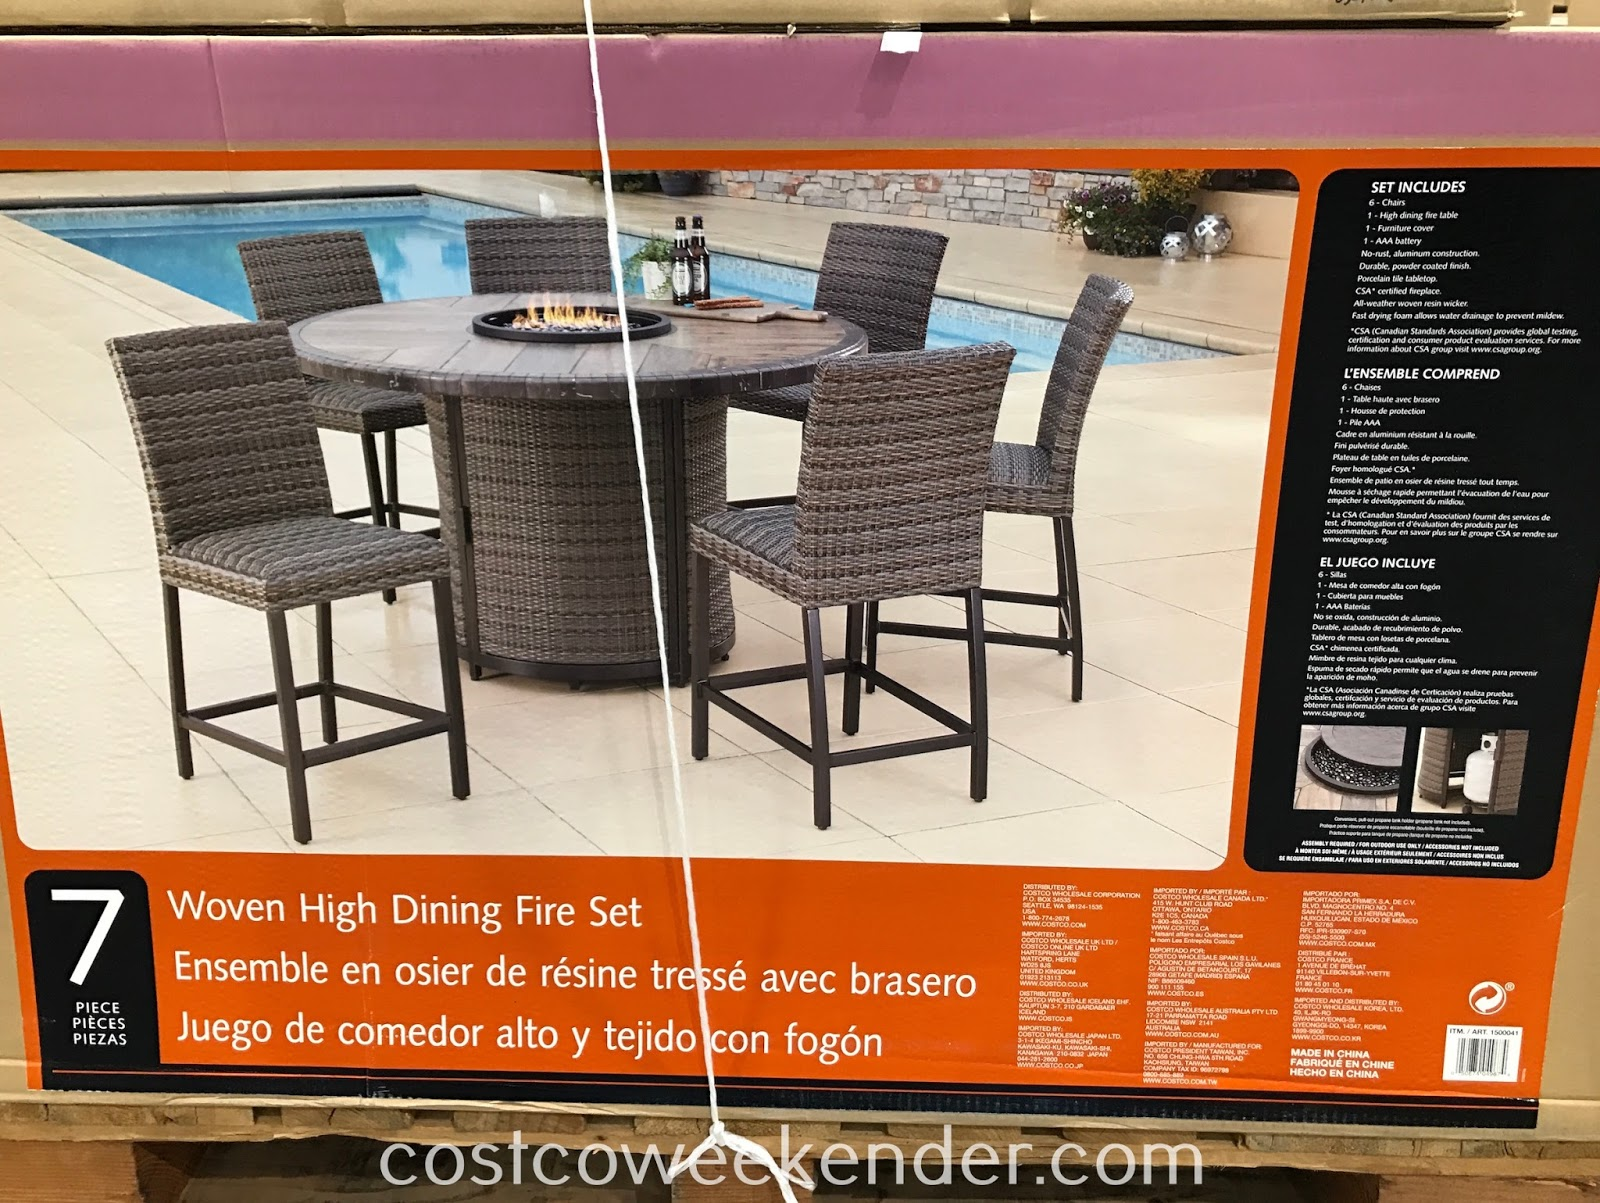 Costco 1500041 - Agio Woven High Dining Set with Firetable features a firetable